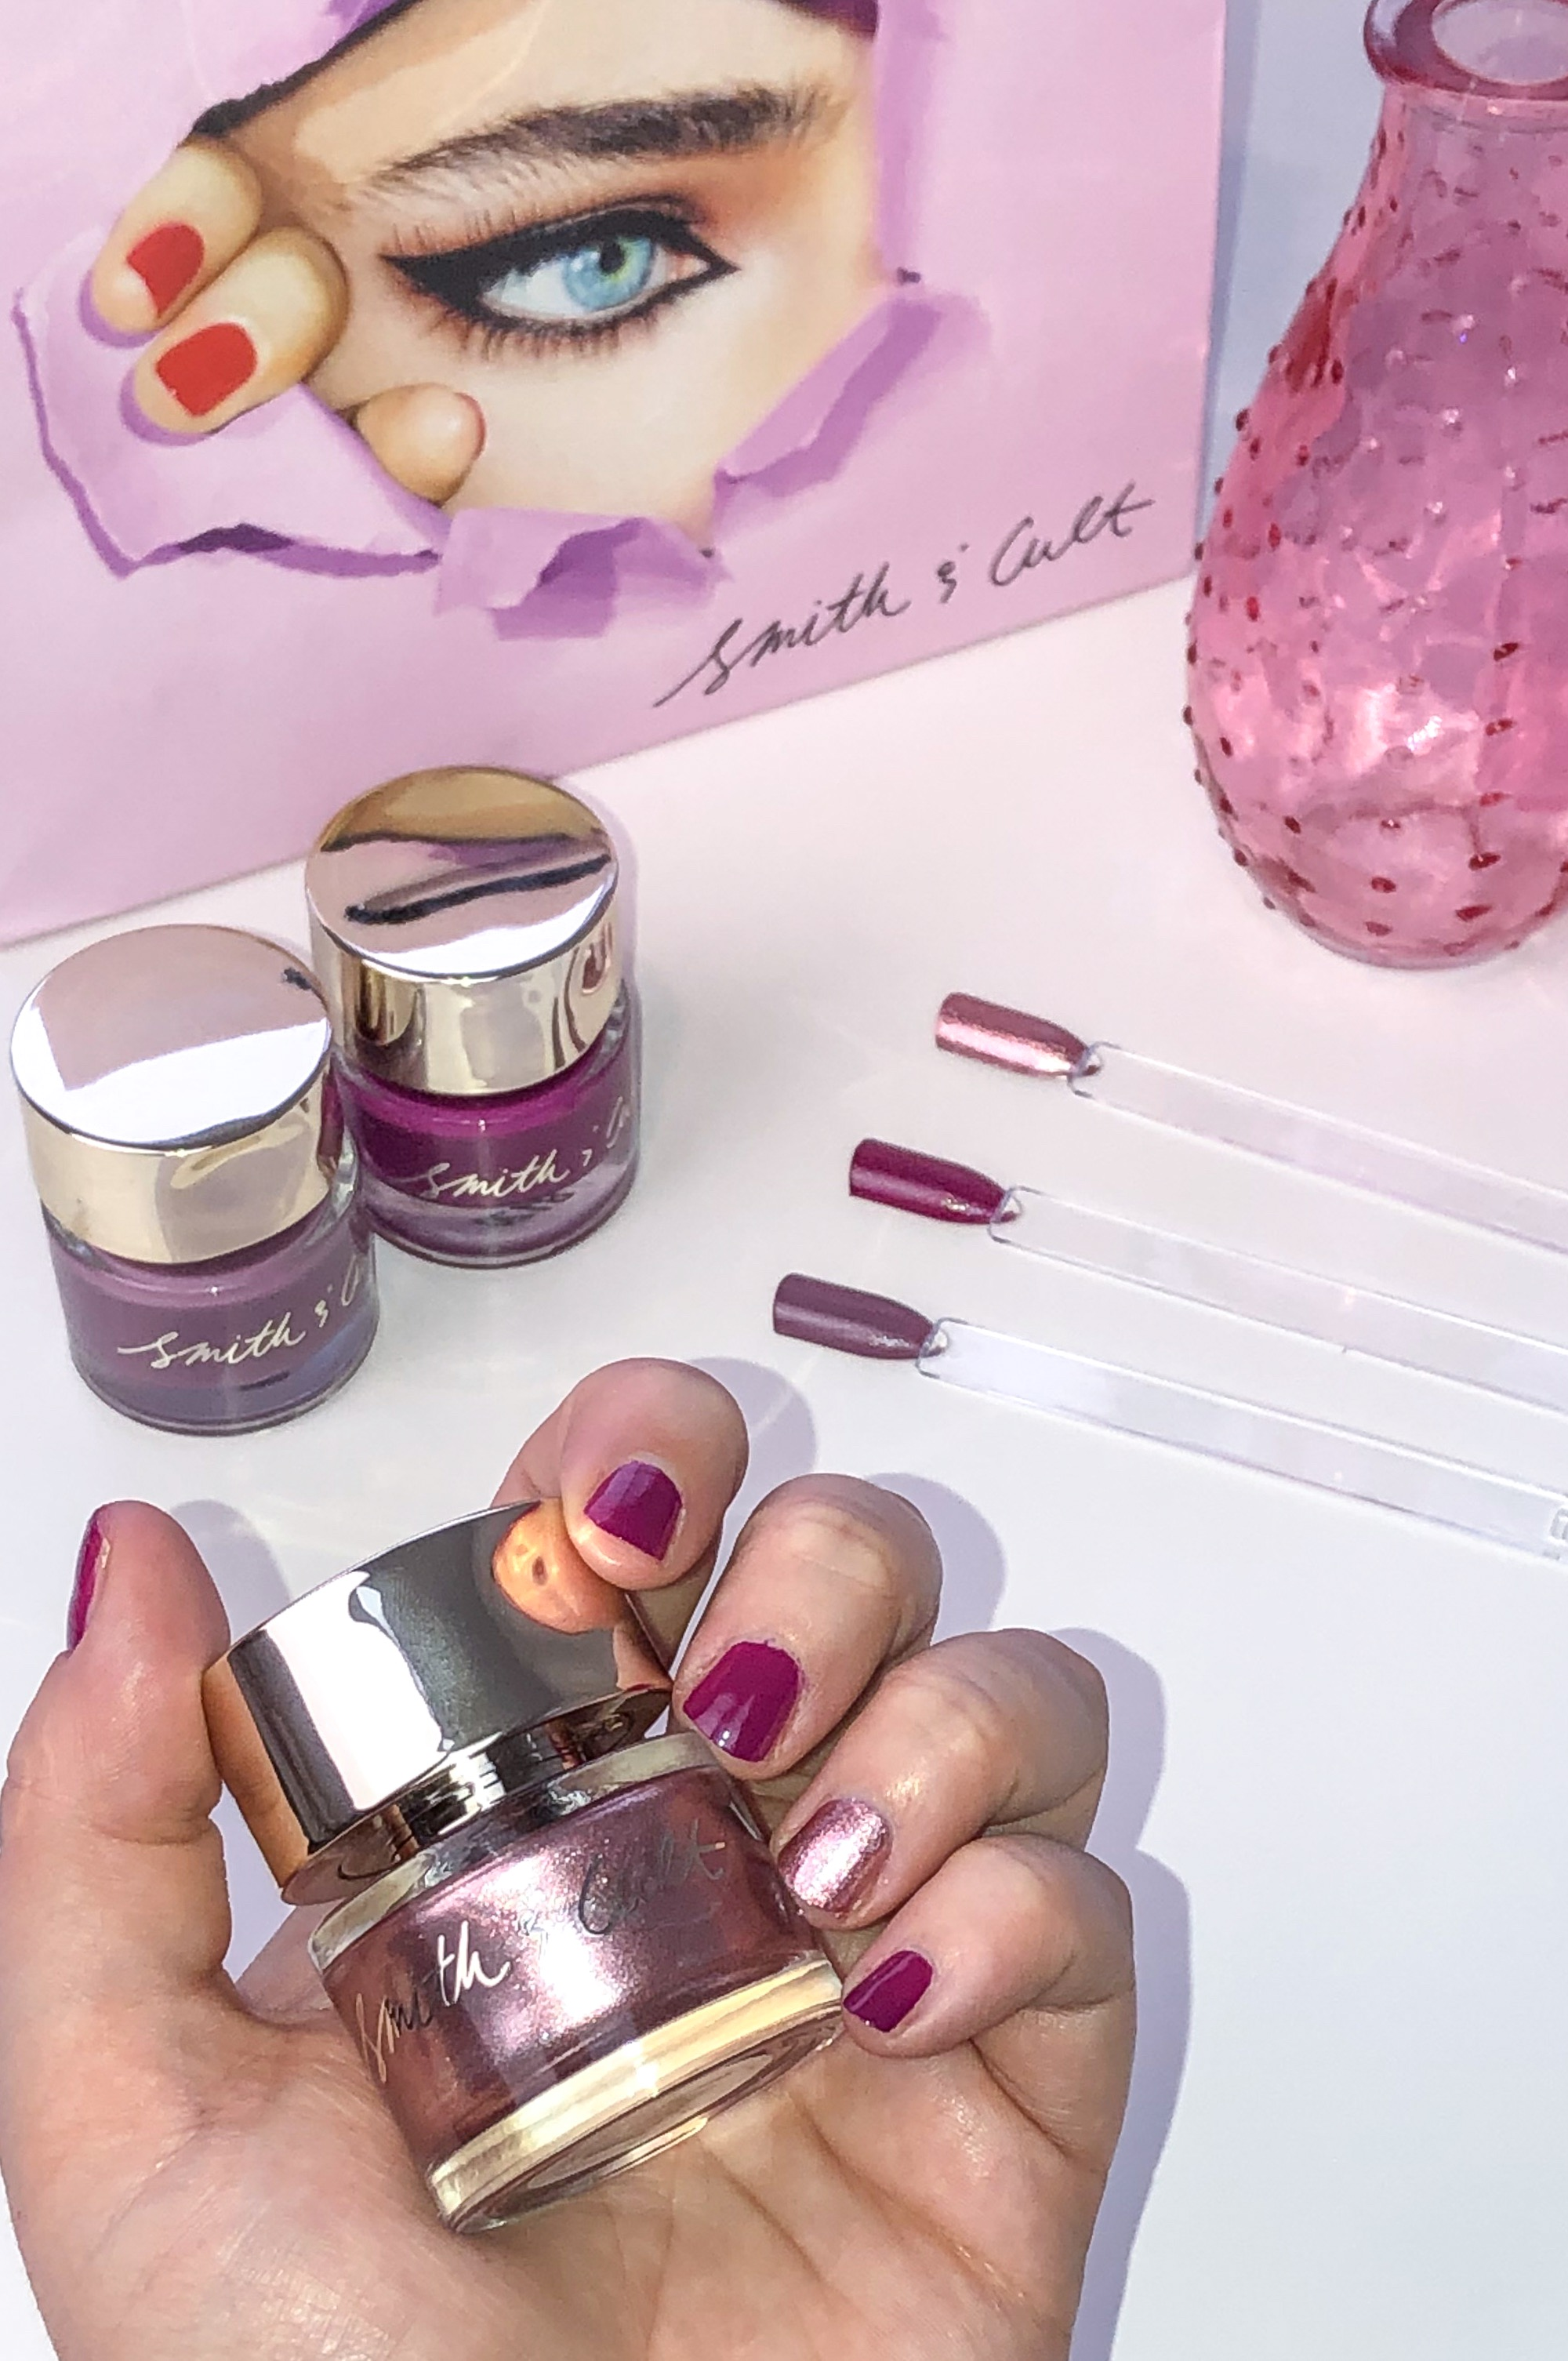 Smith Cult Nail Polish Swatches December 2018